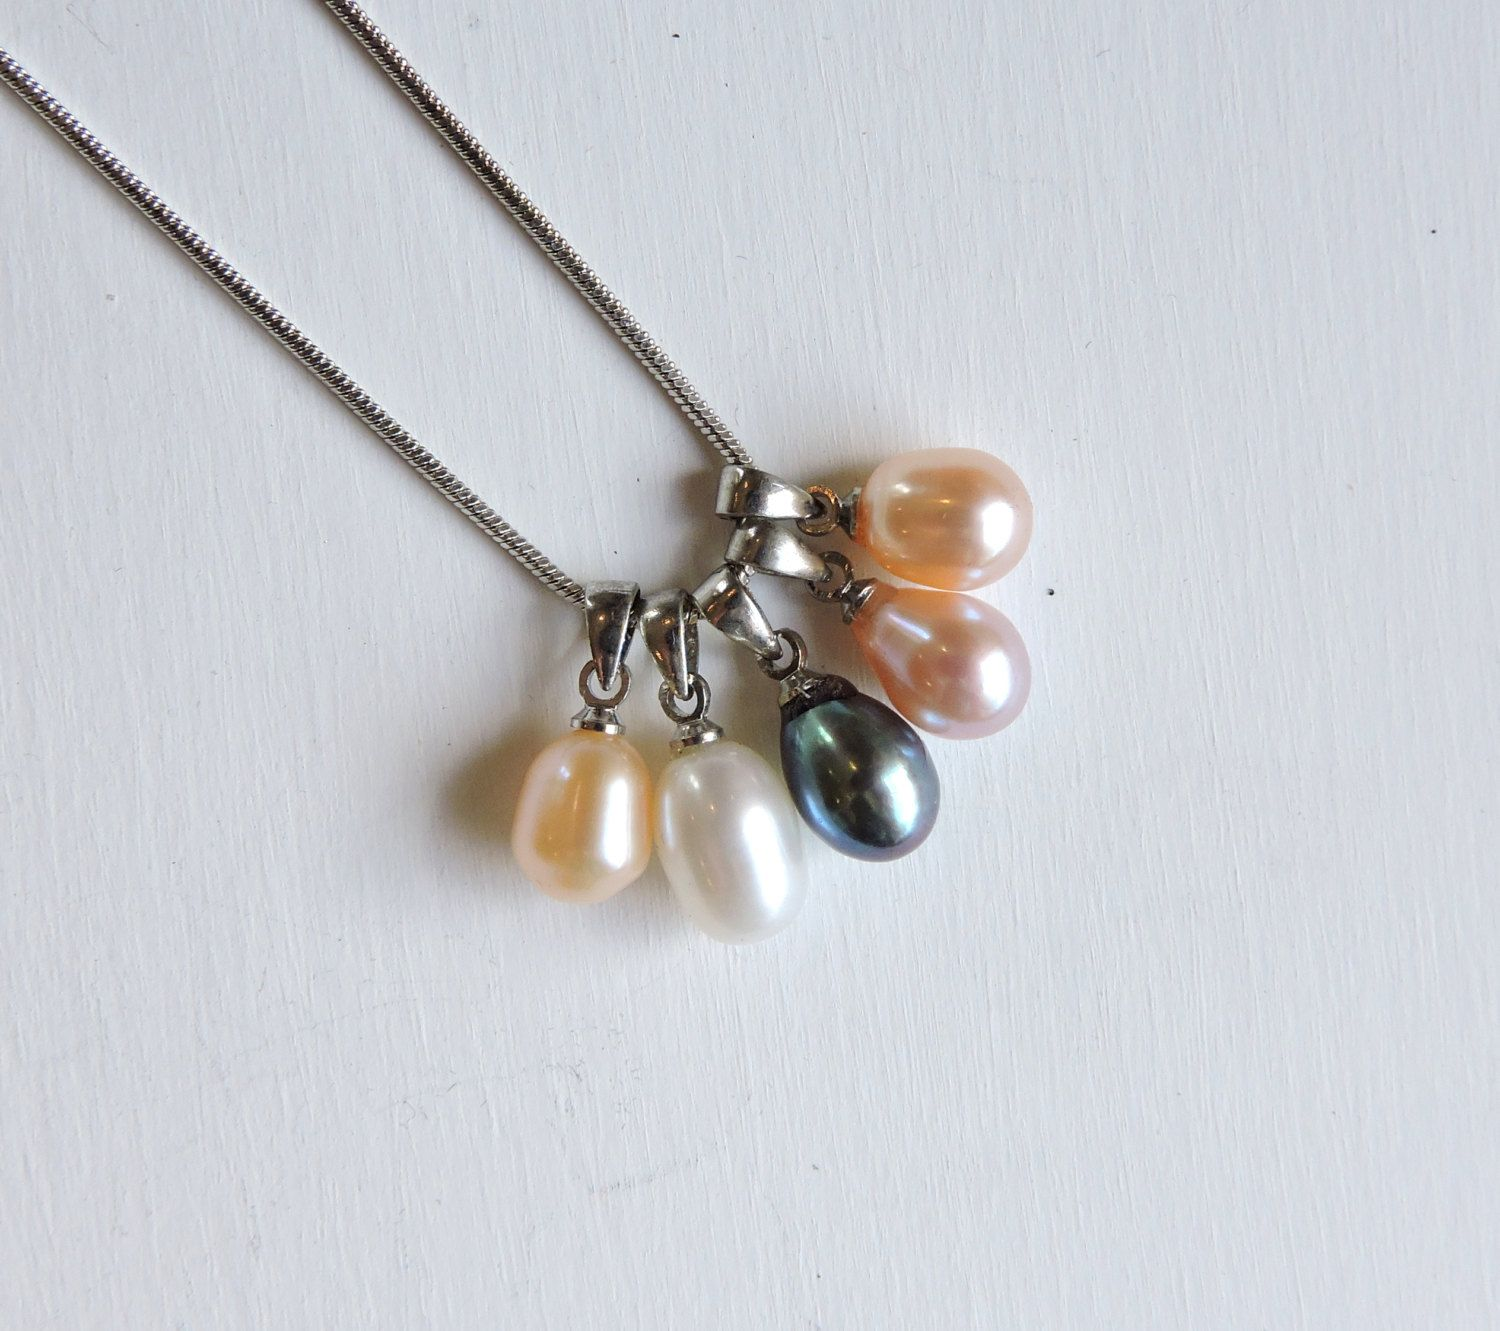 Vintage freshwater pearl pendants silver necklace boxed set 5 vintage freshwater pearl pendants silver necklace boxed set 5 interchangeable pendants dong hui pearl black white cream purple peach aloadofball Images